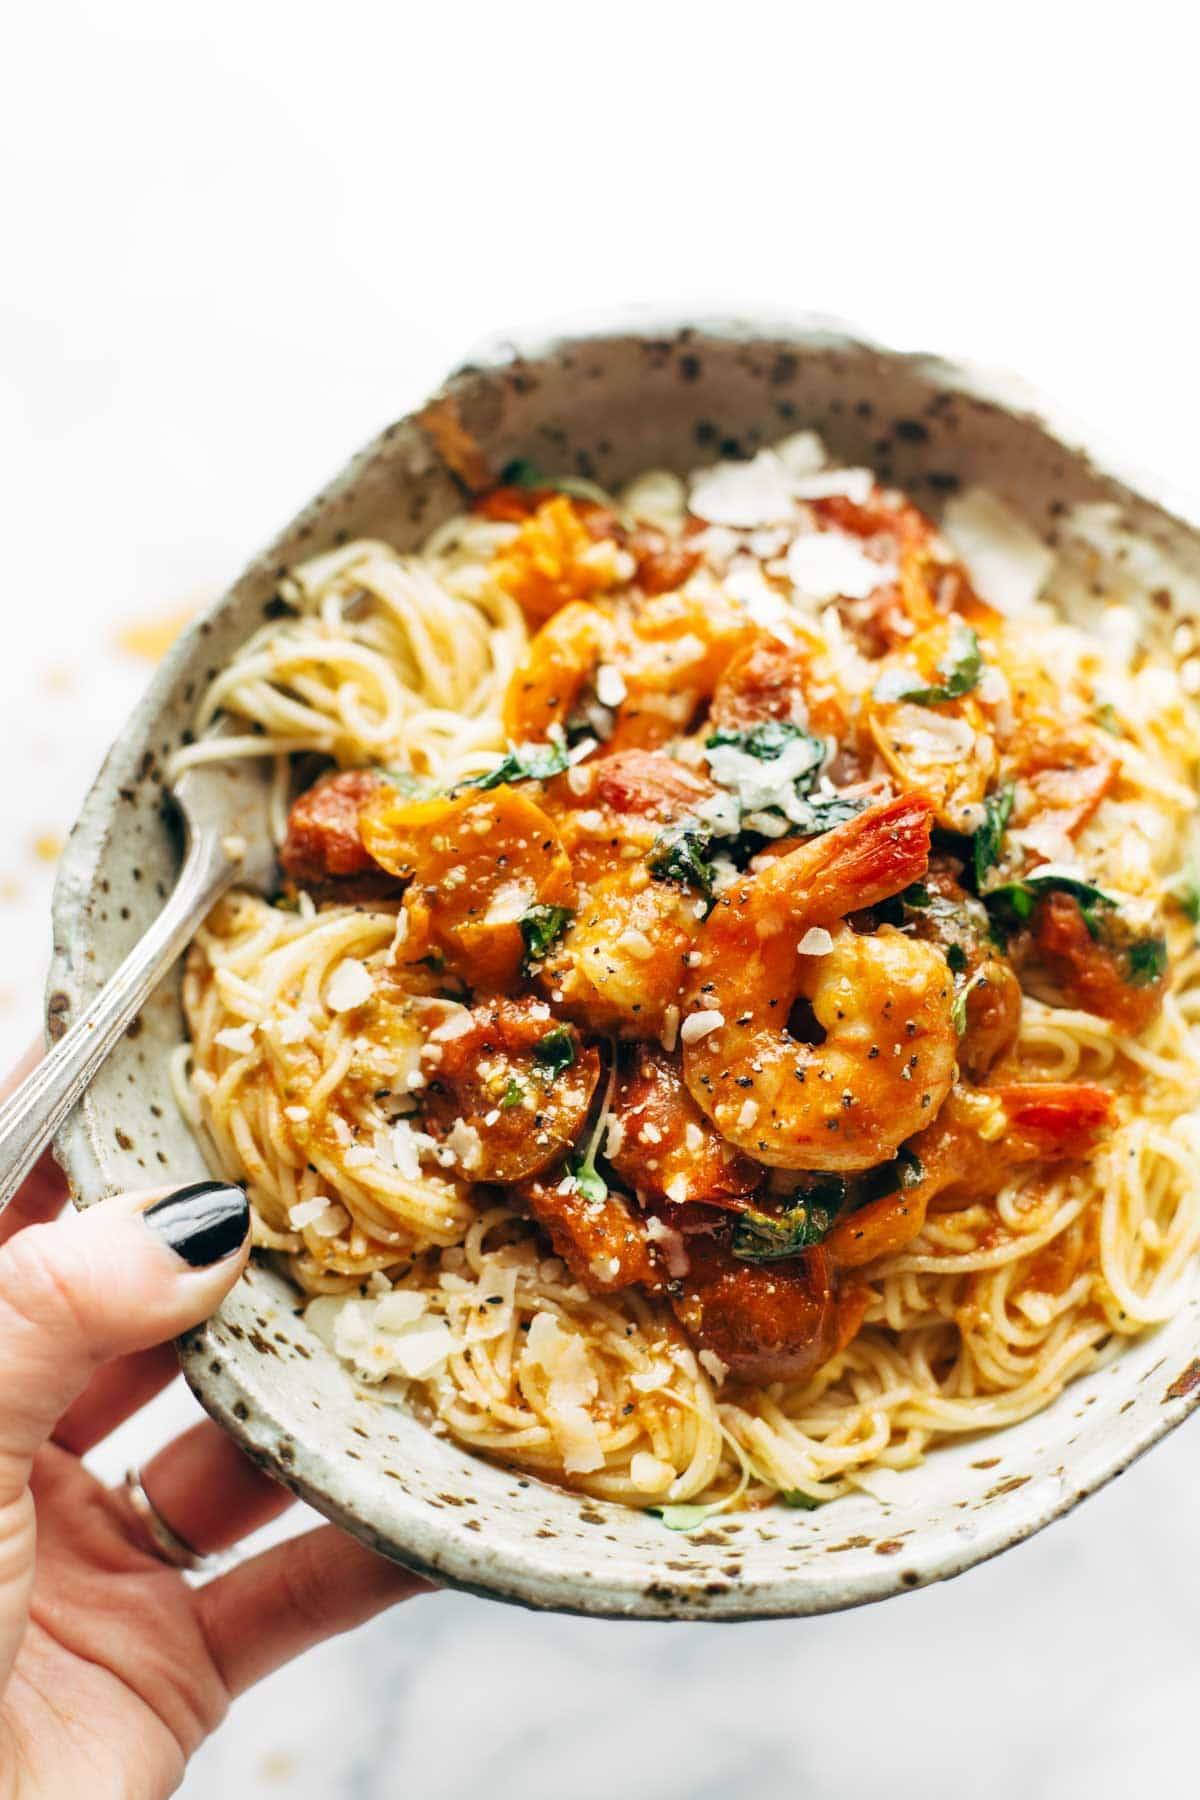 Garlic Butter Capellini Pomodoro with Shrimp - this simple recipe features easy ingredients like capellini pasta, shrimp, garlic, butter, basil, and fresh tomatoes. Ready in 30! | pinchofyum.com